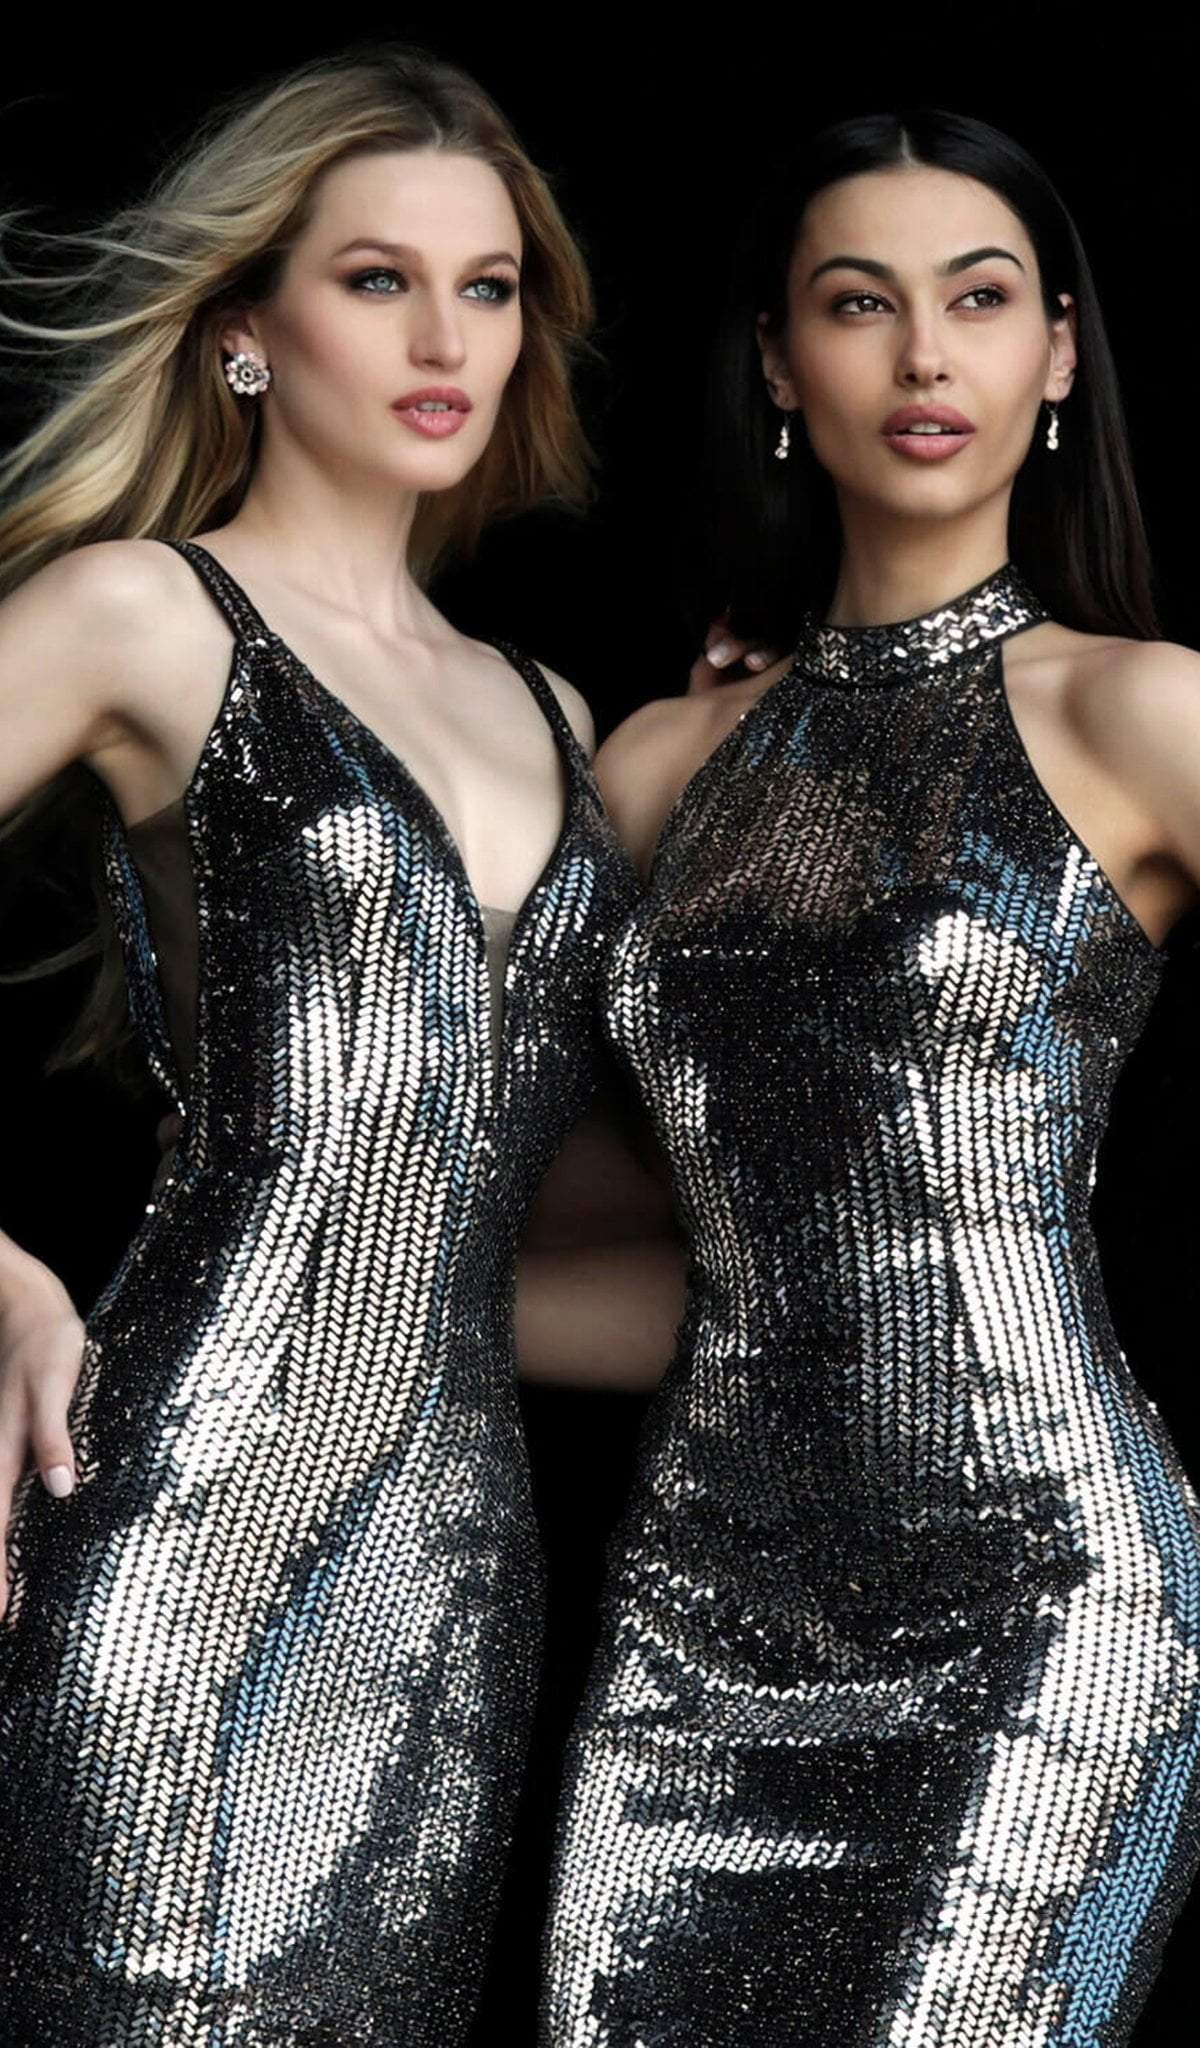 Jovani - 65169 Plunging V-Neck Novelty Sequined Dress in Black and Silver